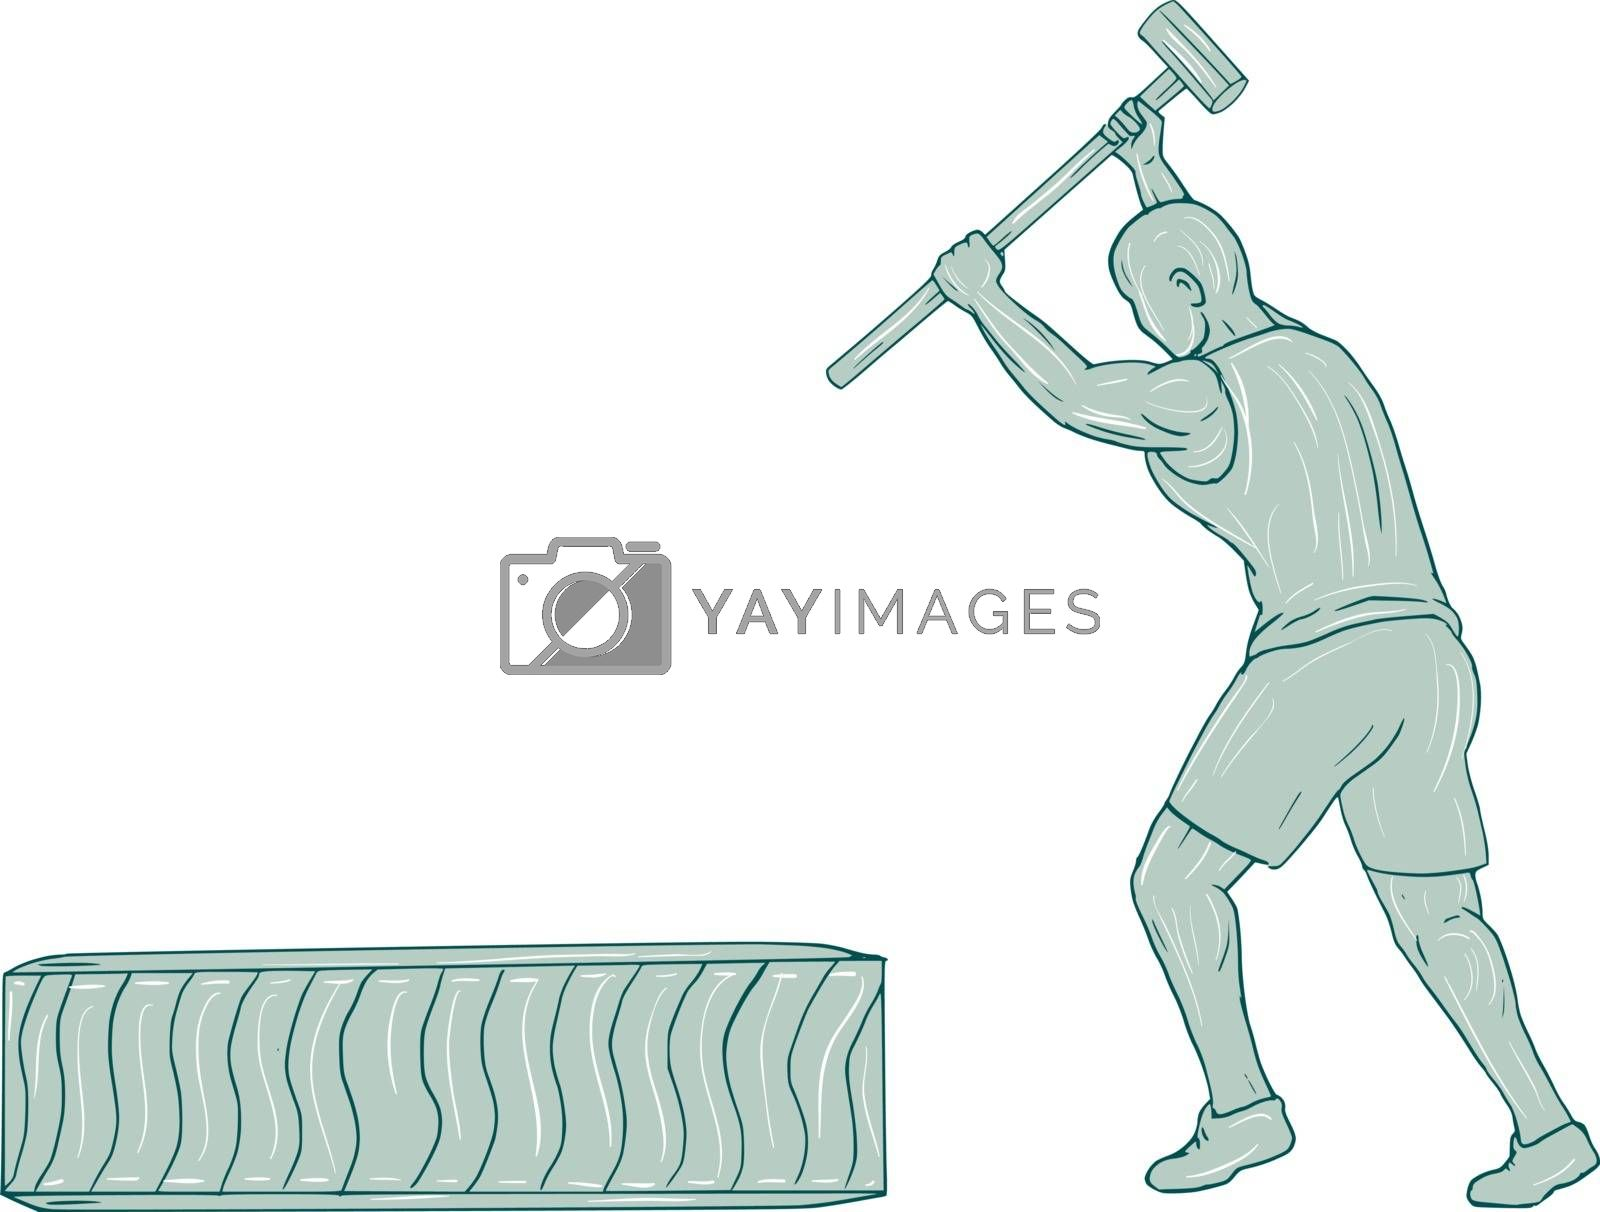 Drawing sketch style illustration of an athlete working out holding sledgehammer striking tire viewed from the side set on isolated white background.